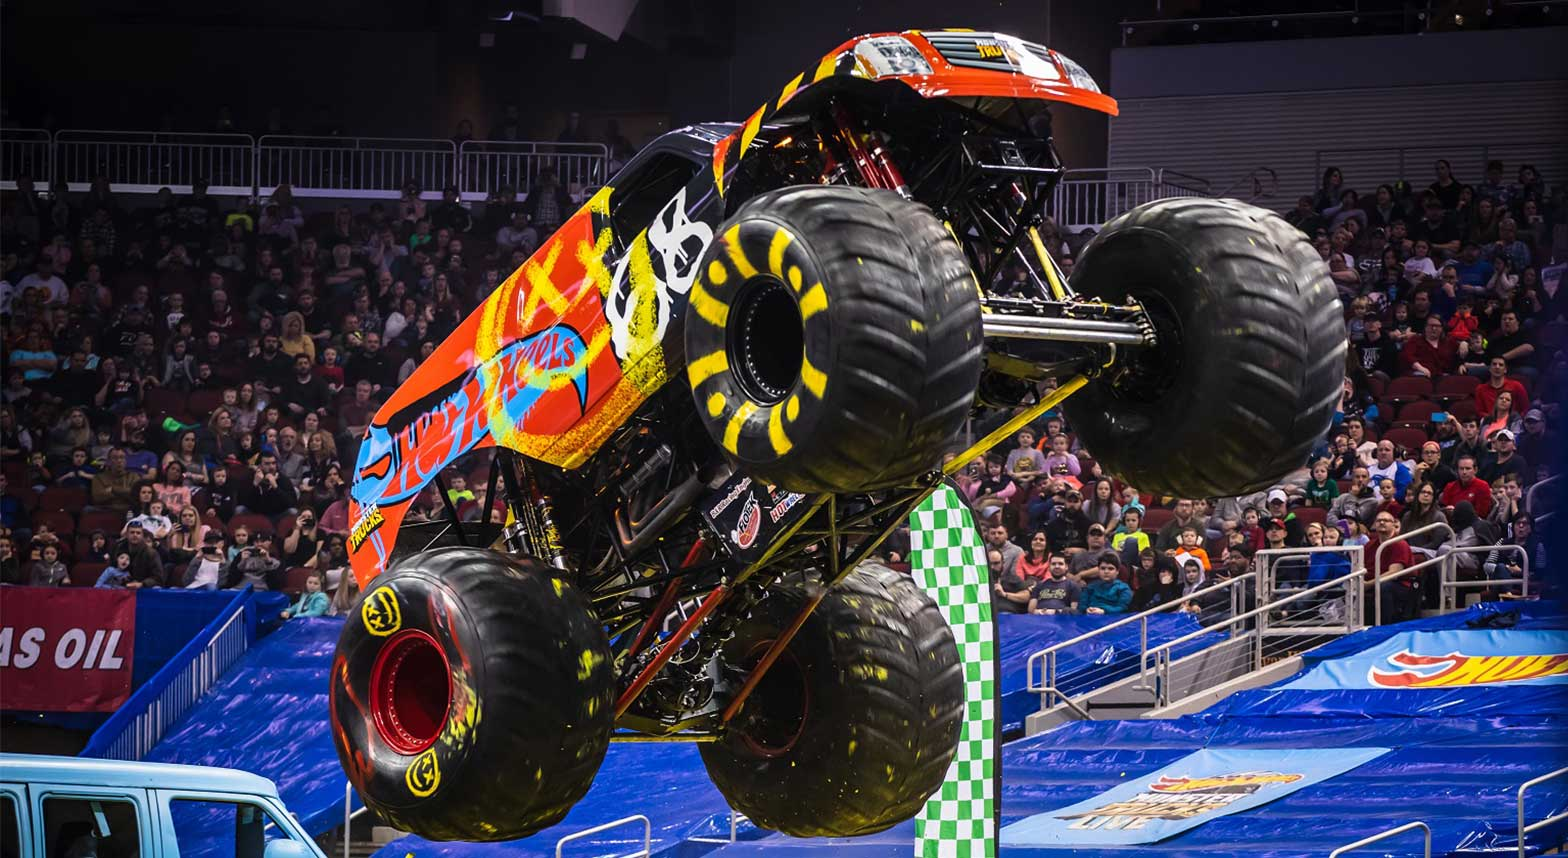 hot-wheels-monster-trucks-image1.jpg